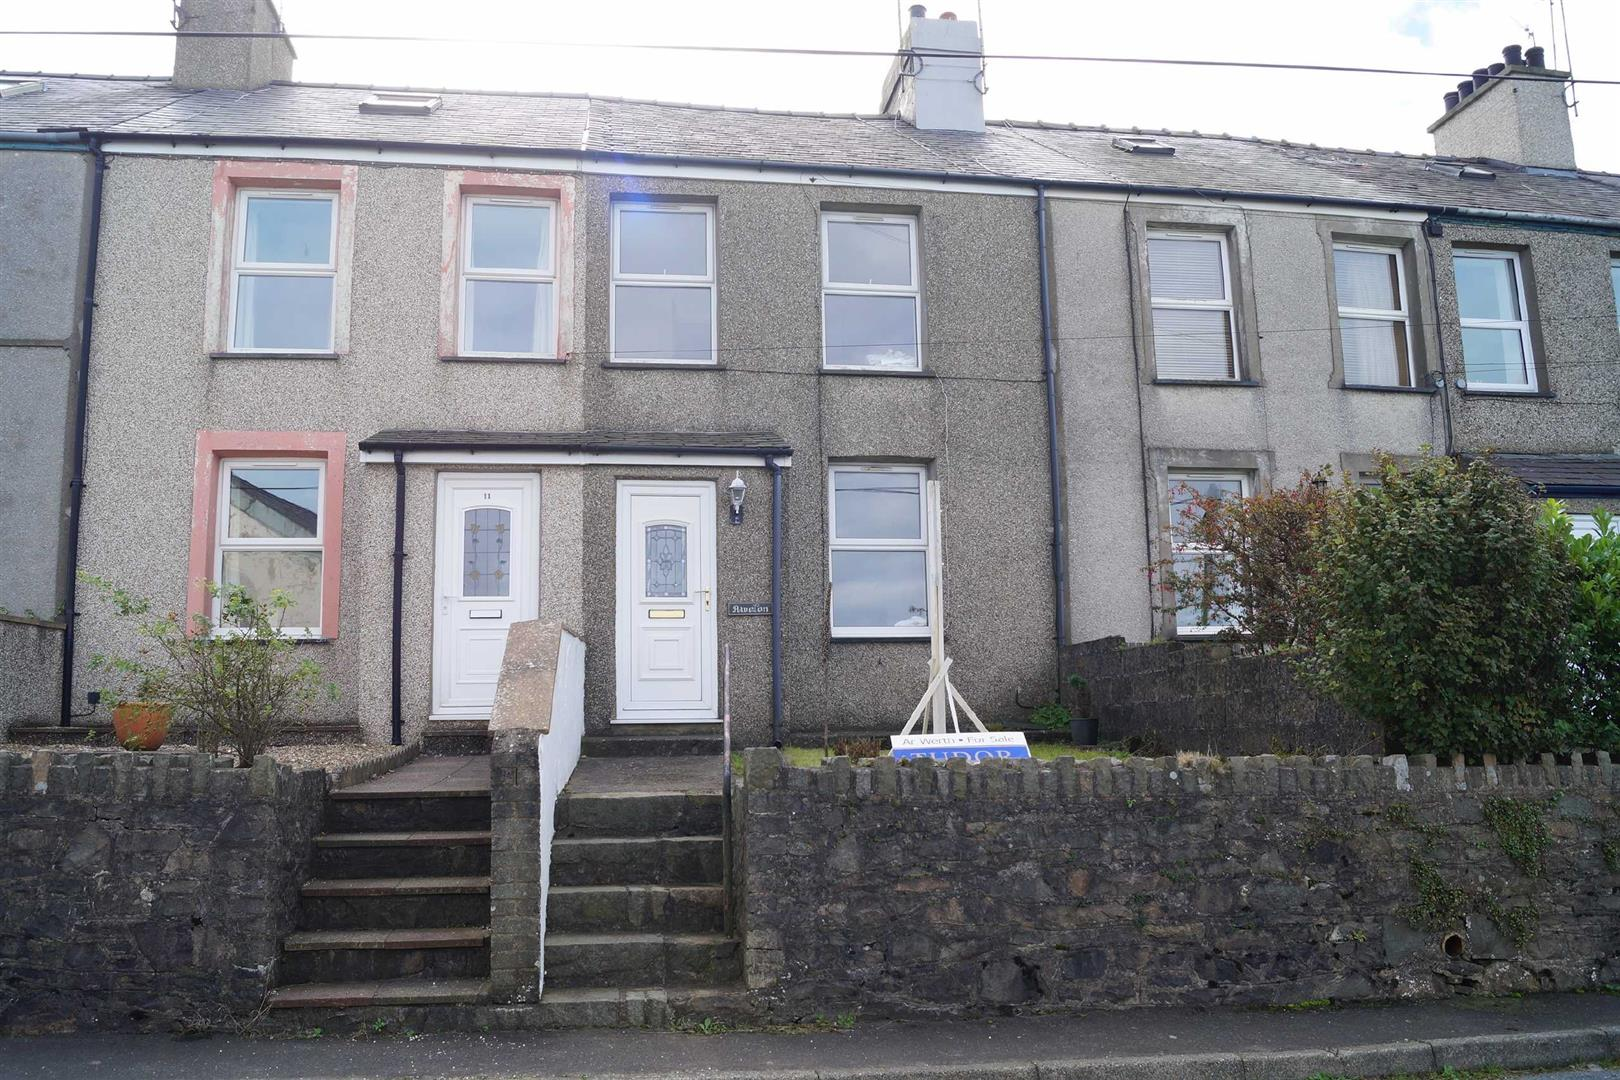 Pistyll Terrace, Pistyll - £129,500/Reduced to